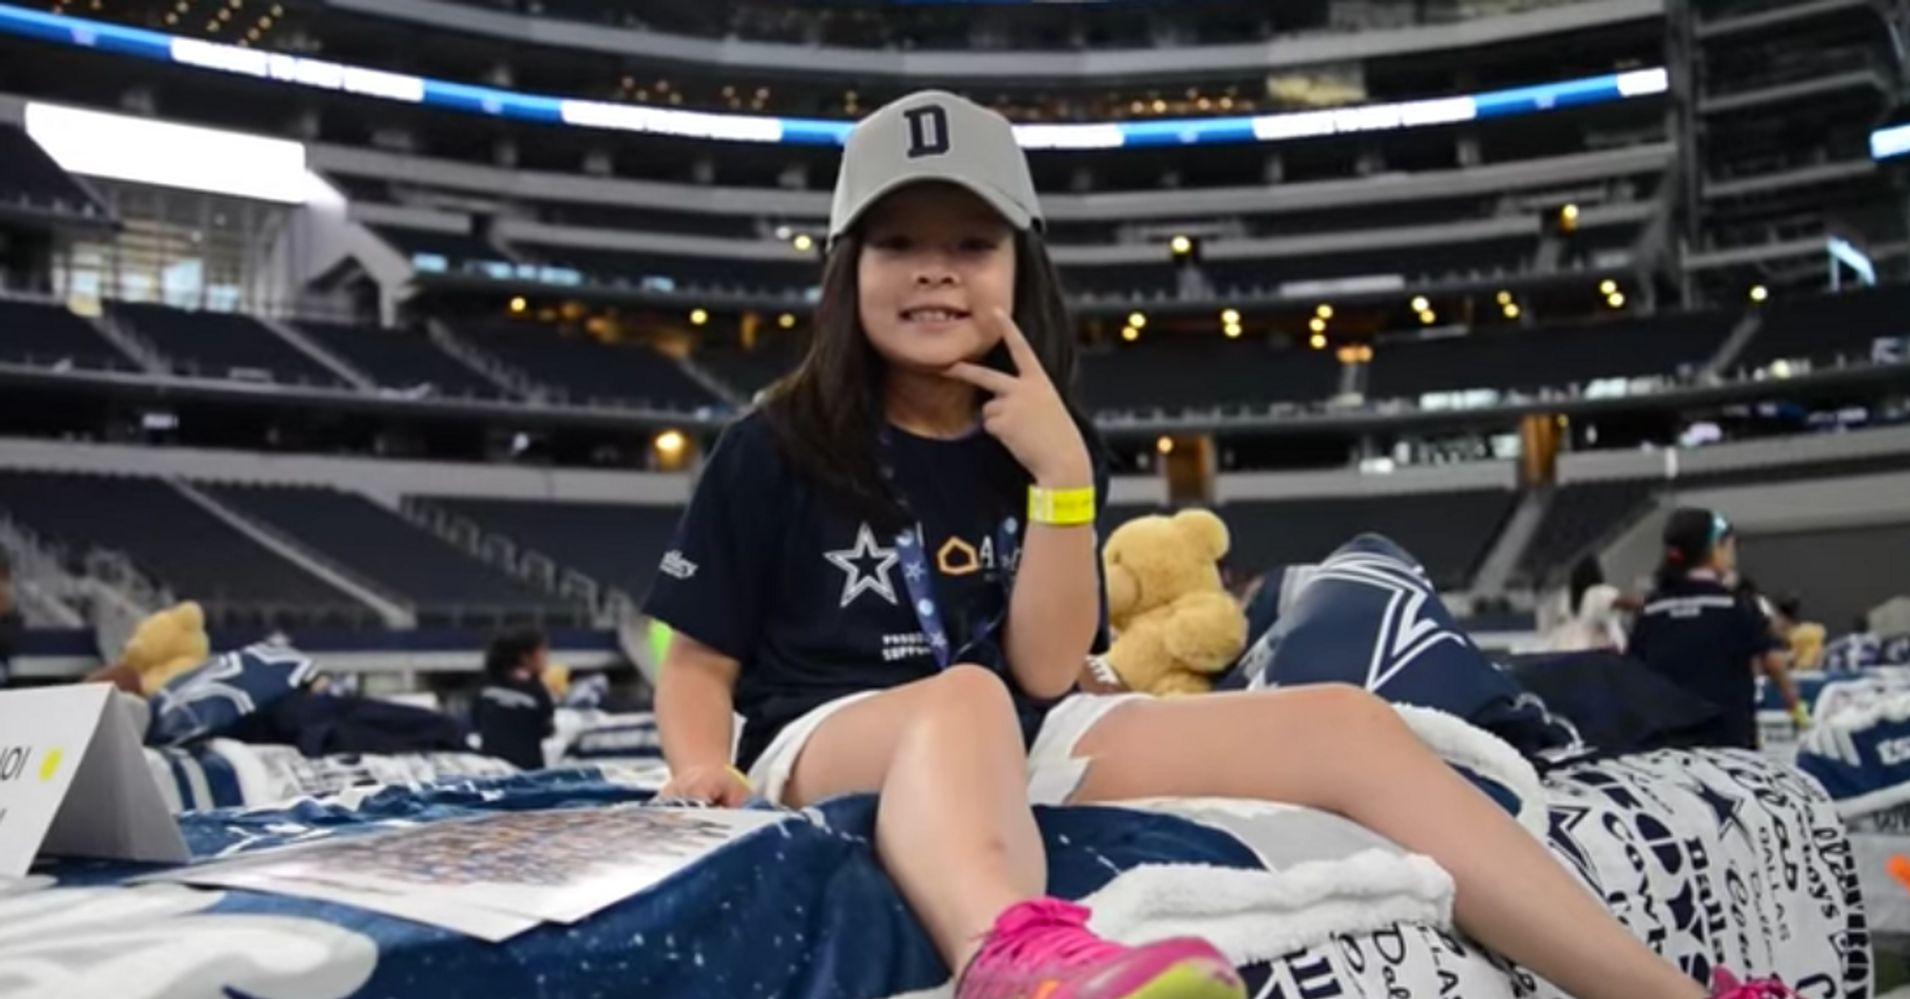 9610b84e3d3 Kids In Need Get Free Beds After Slumber Party At Dallas Cowboys' Stadium |  HuffPost